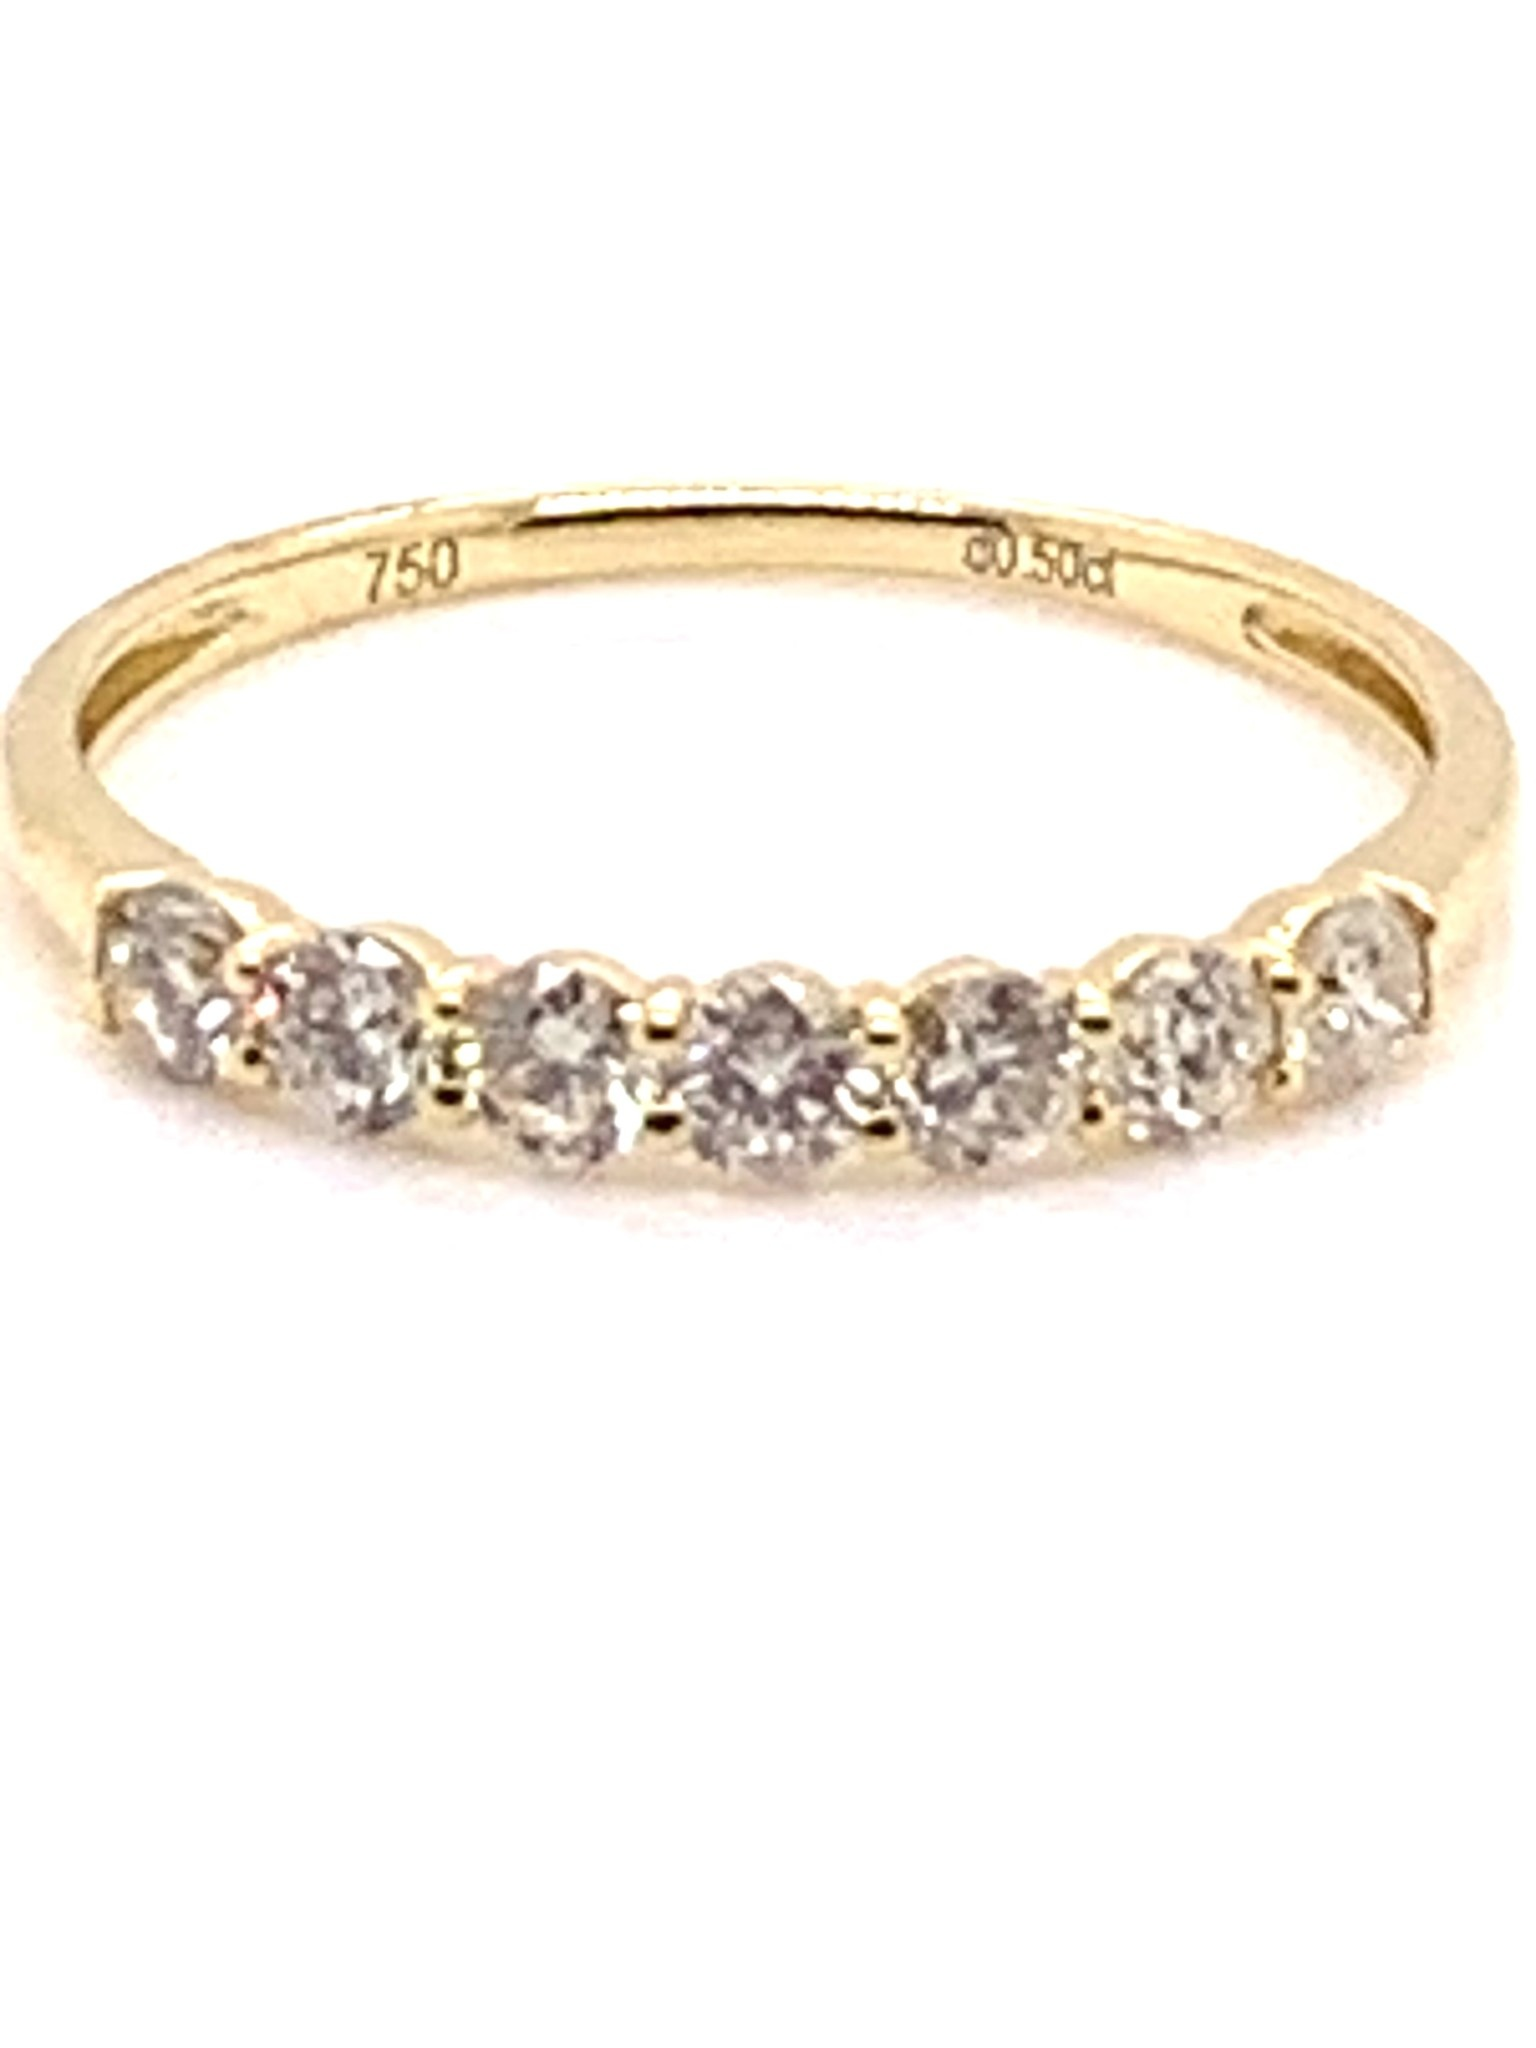 18K yellow gold 0.50 carat 7-stone diamond  band size 7